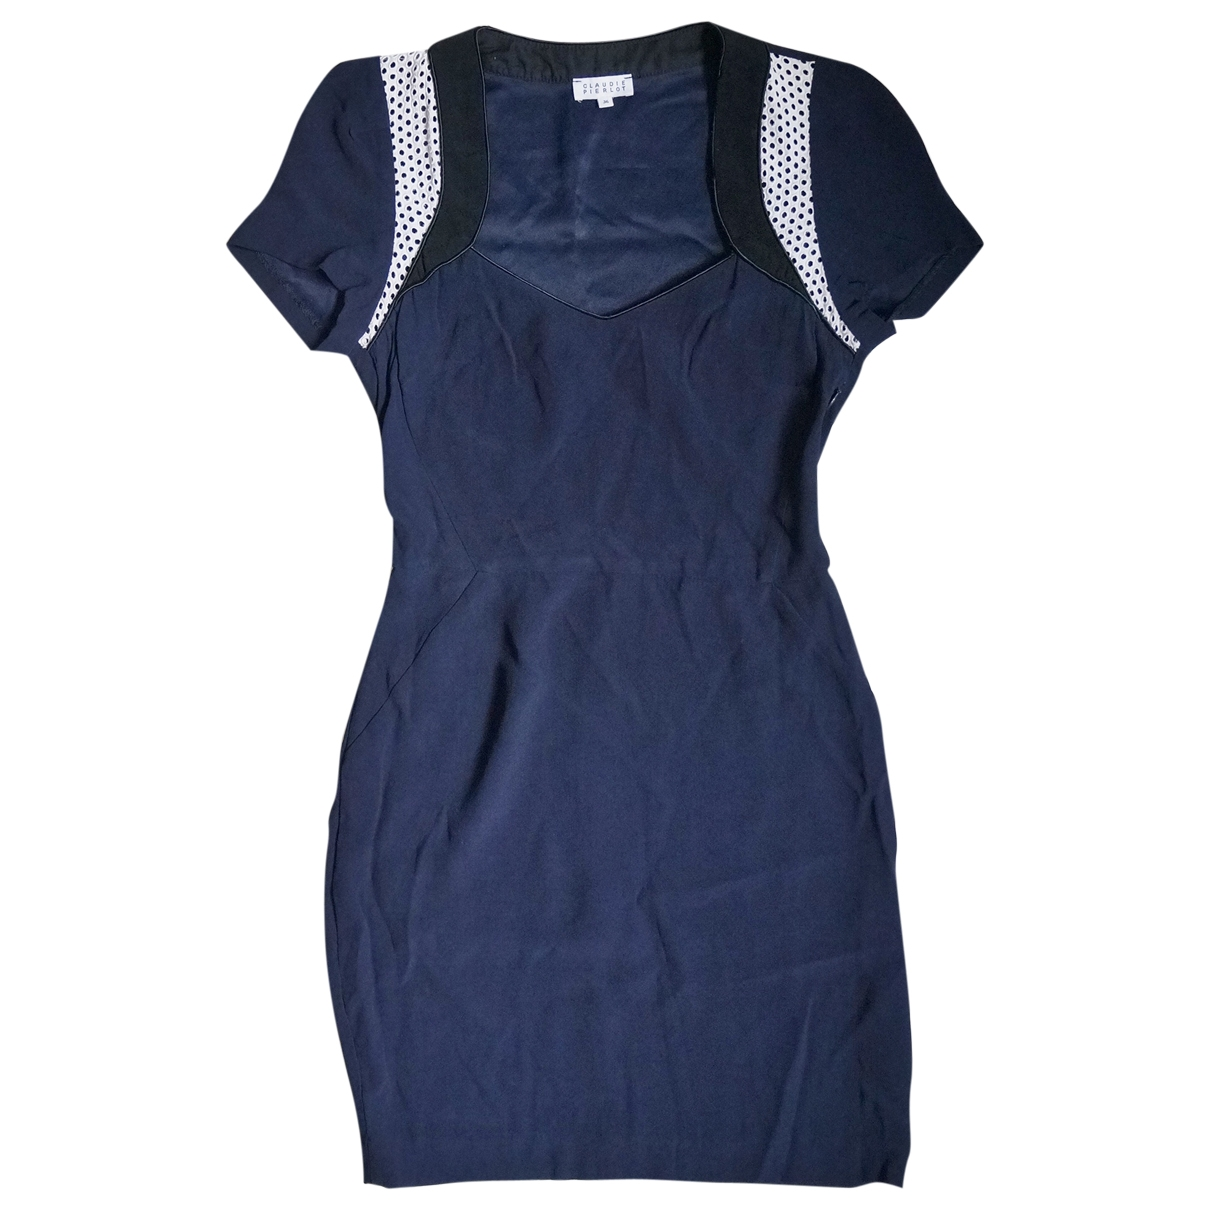 Claudie Pierlot \N Navy dress for Women 36 FR